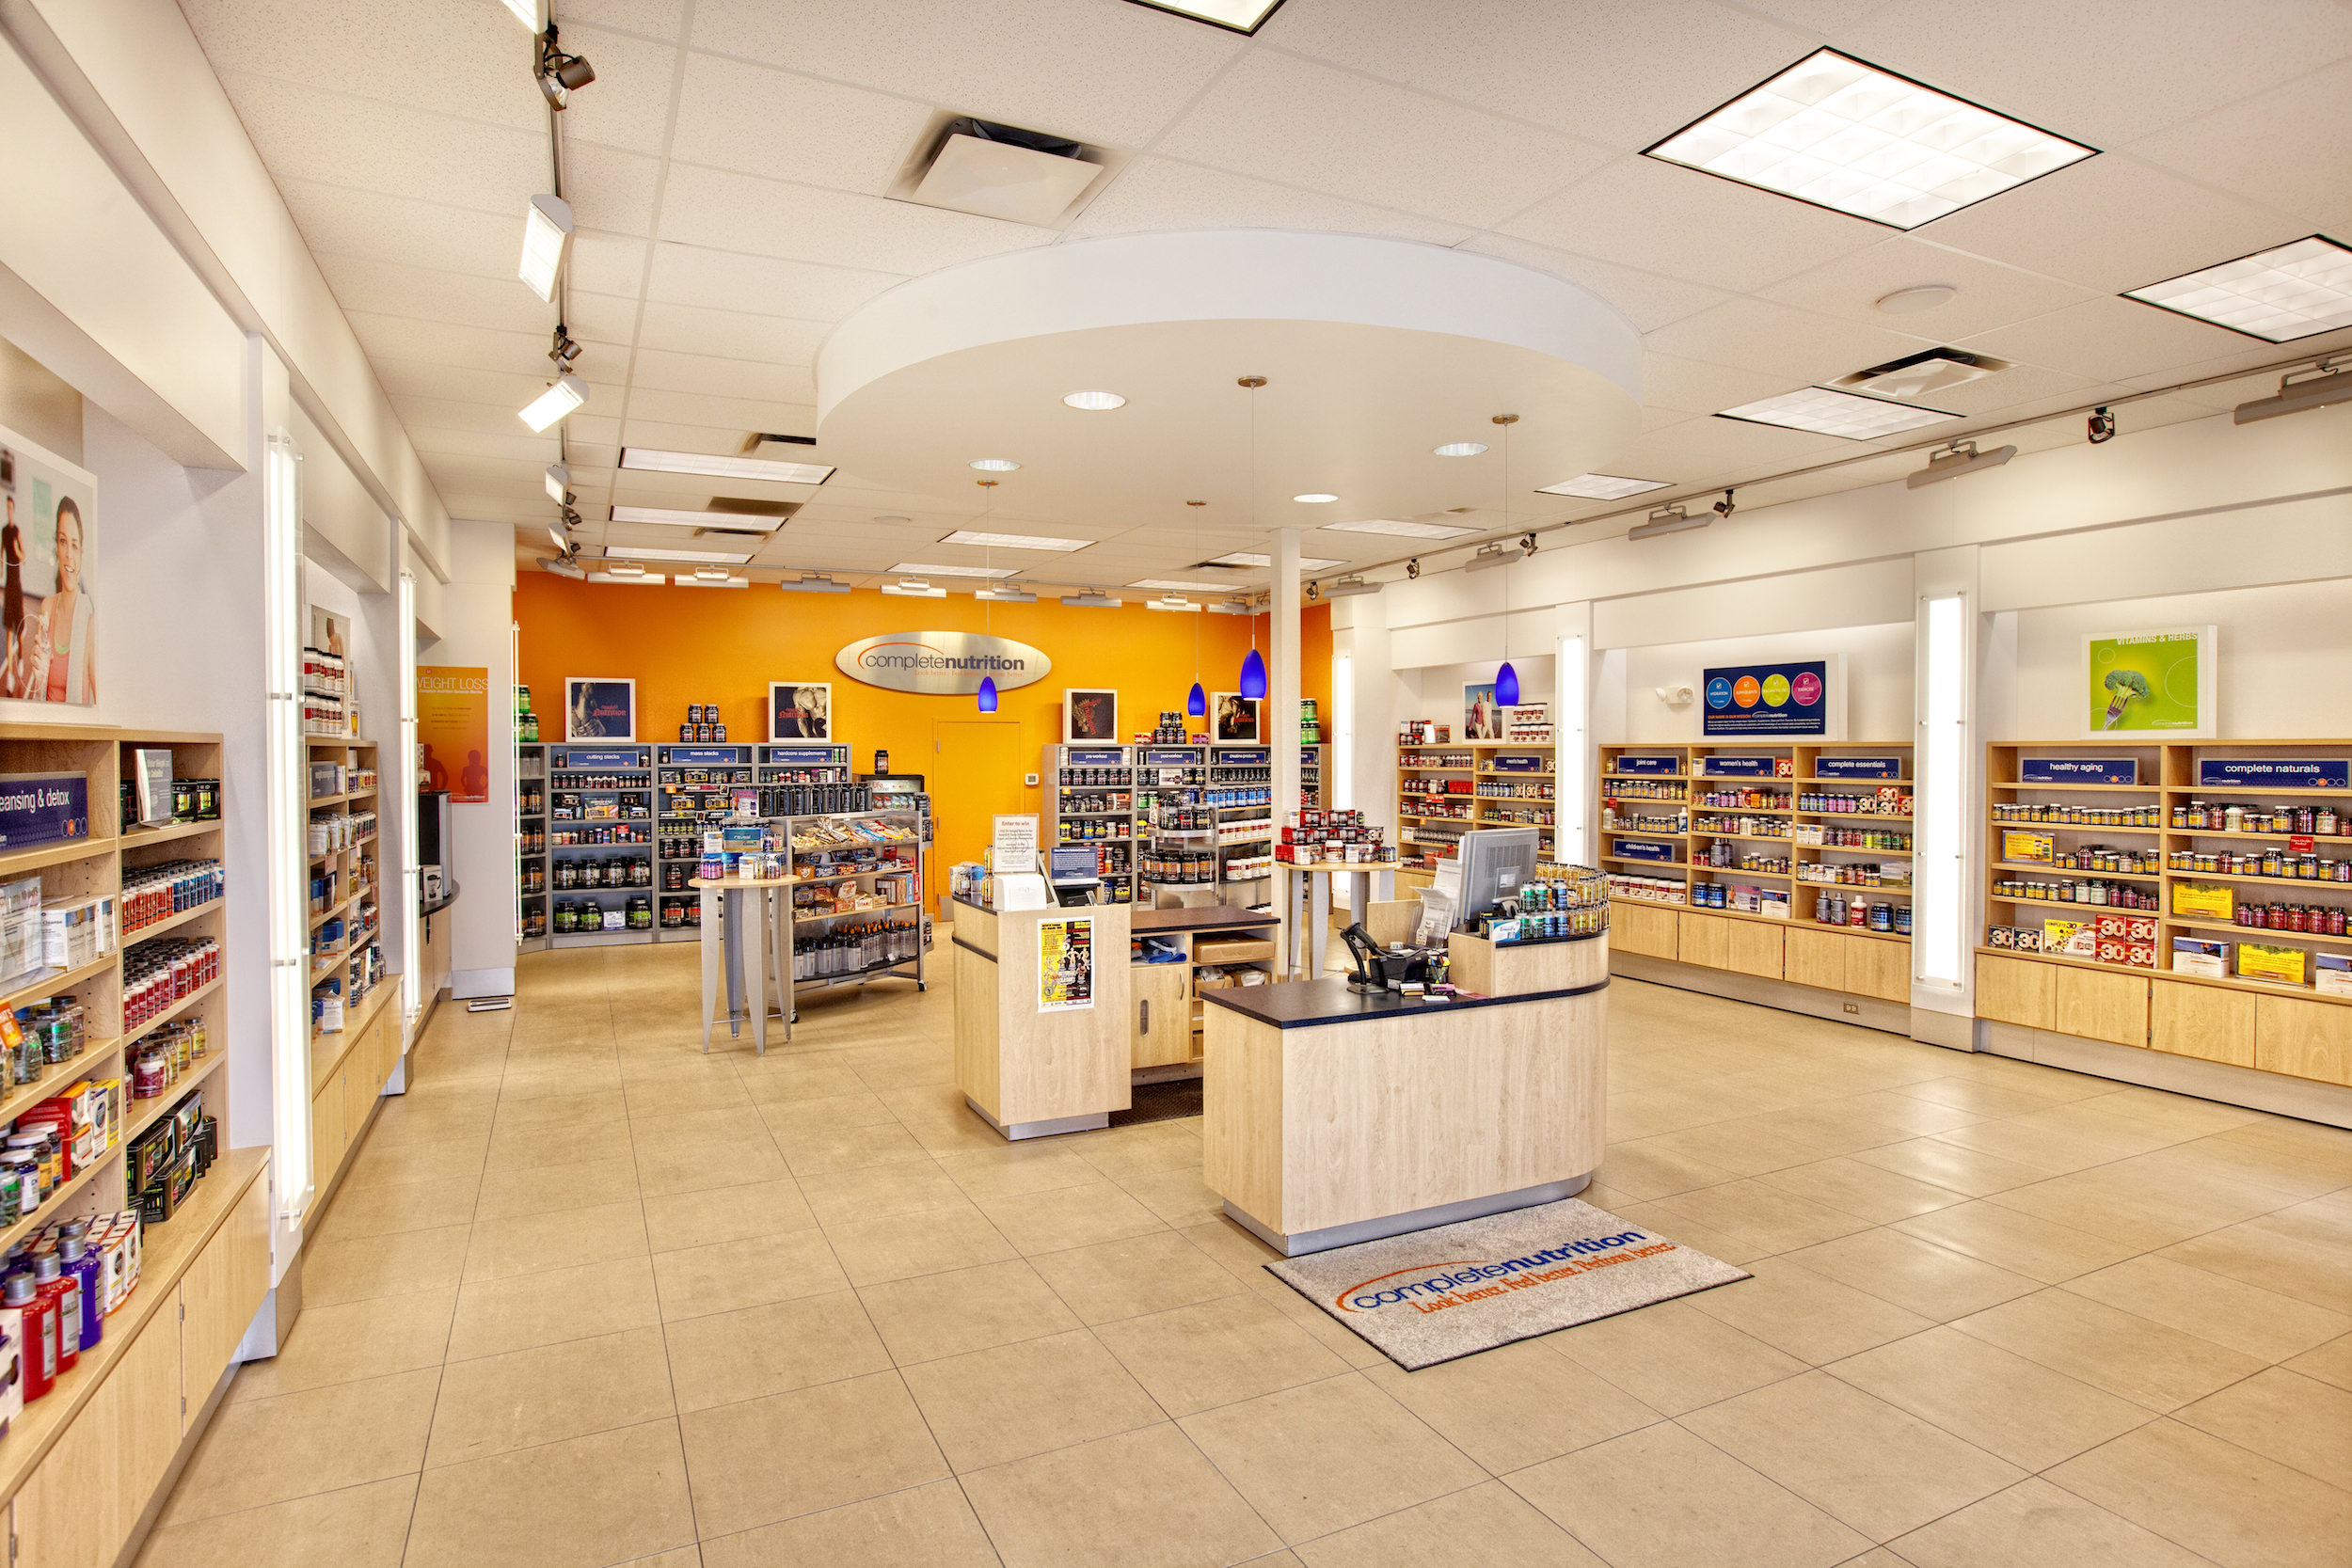 A view of the interior of Complete Nutrition's retail store